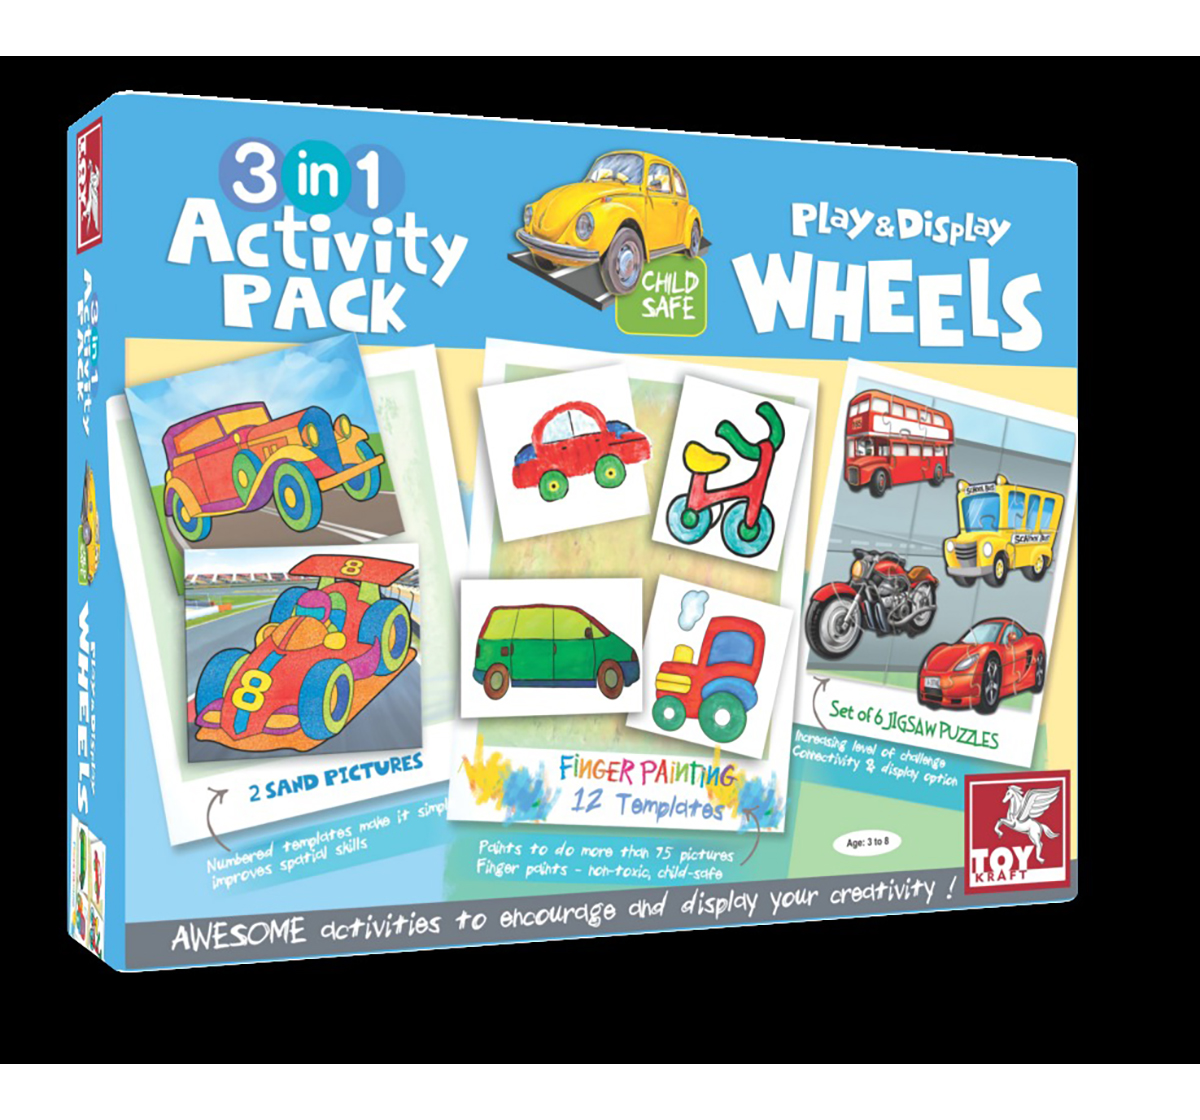 Toy Kraft | Toy Kraft 3 In 1 Activity – On Road DIY Art & Craft Kits for Kids age 3Y+